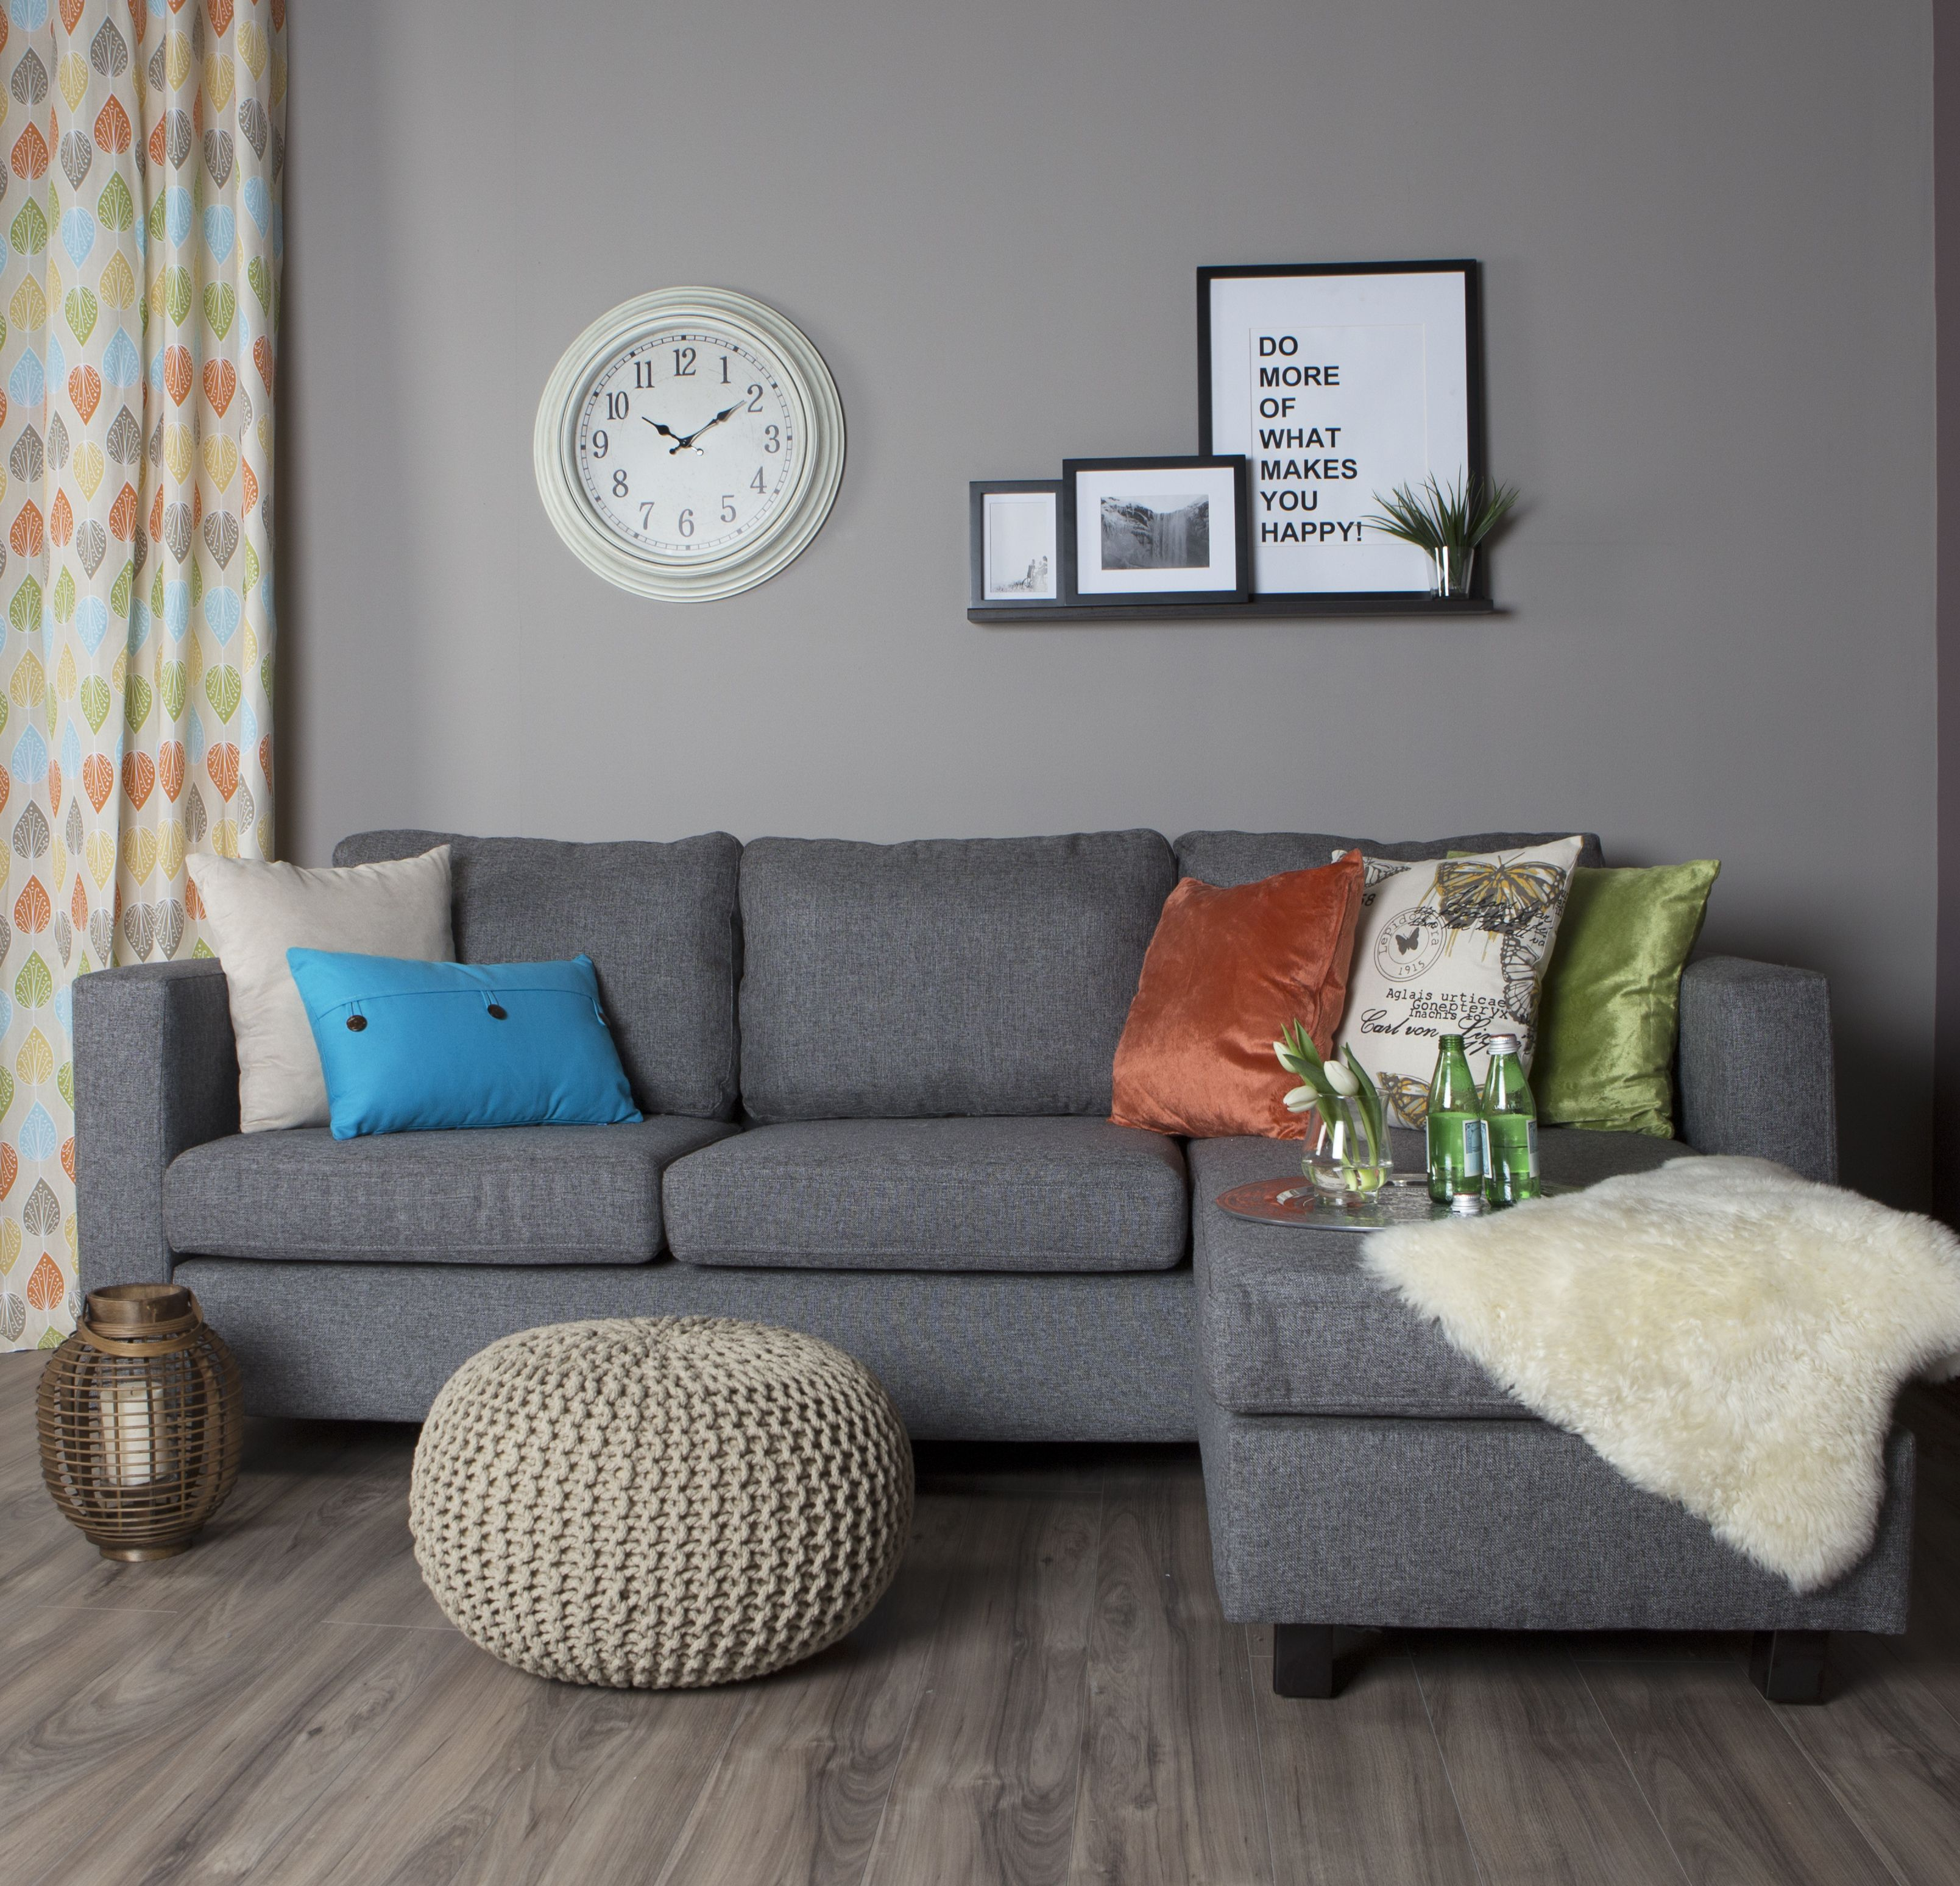 Freshen Up Your Living Room With Some Spring Coloured Cushions And Drapery